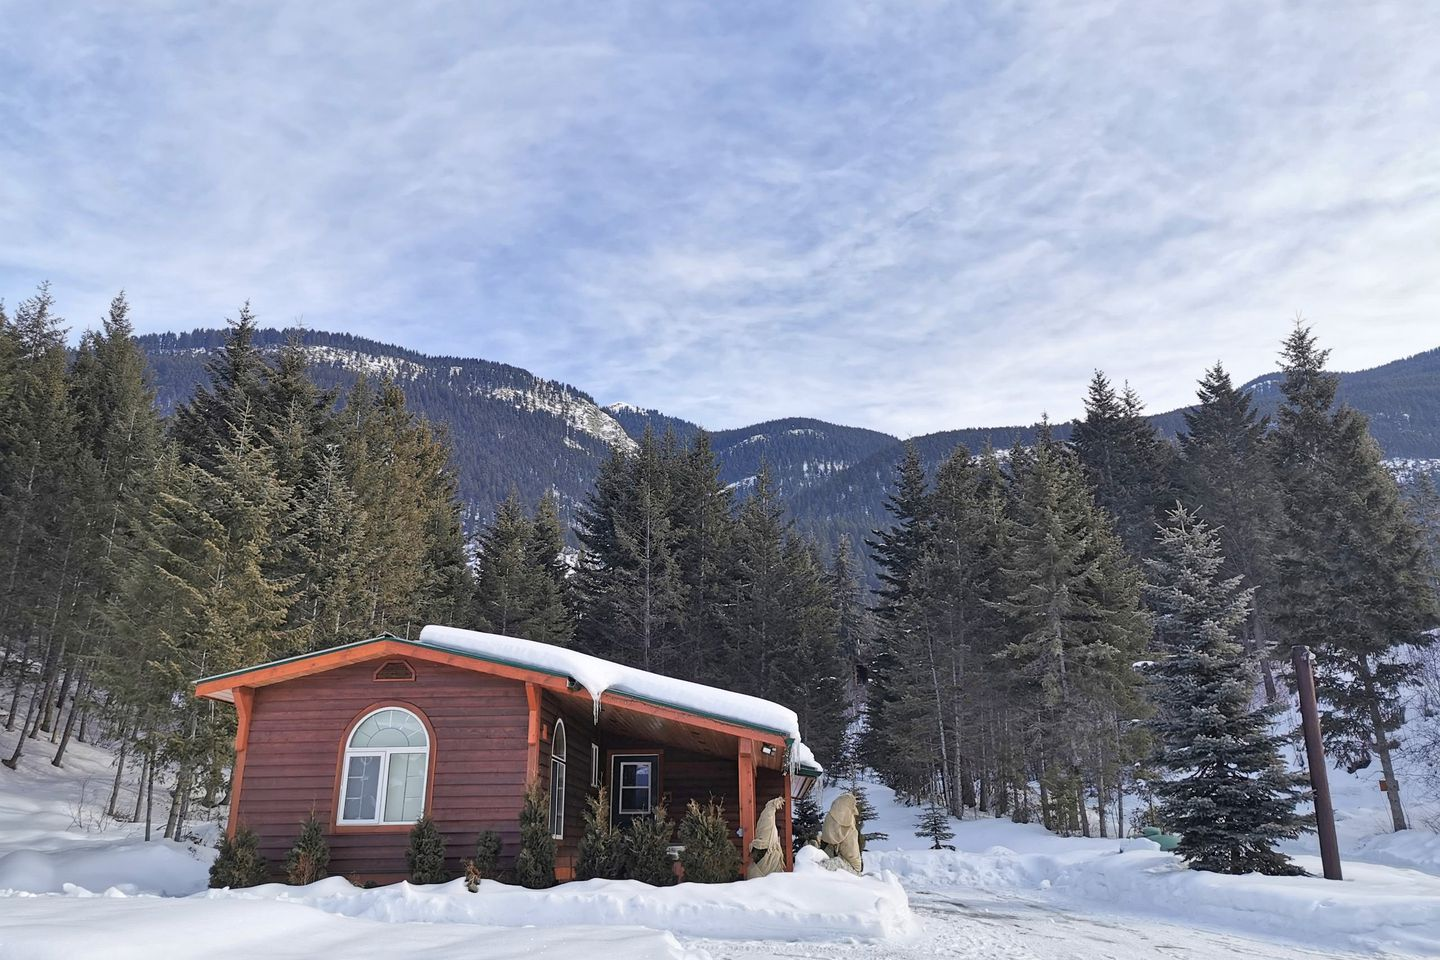 Cabins (Golden, British Columbia, Canada)